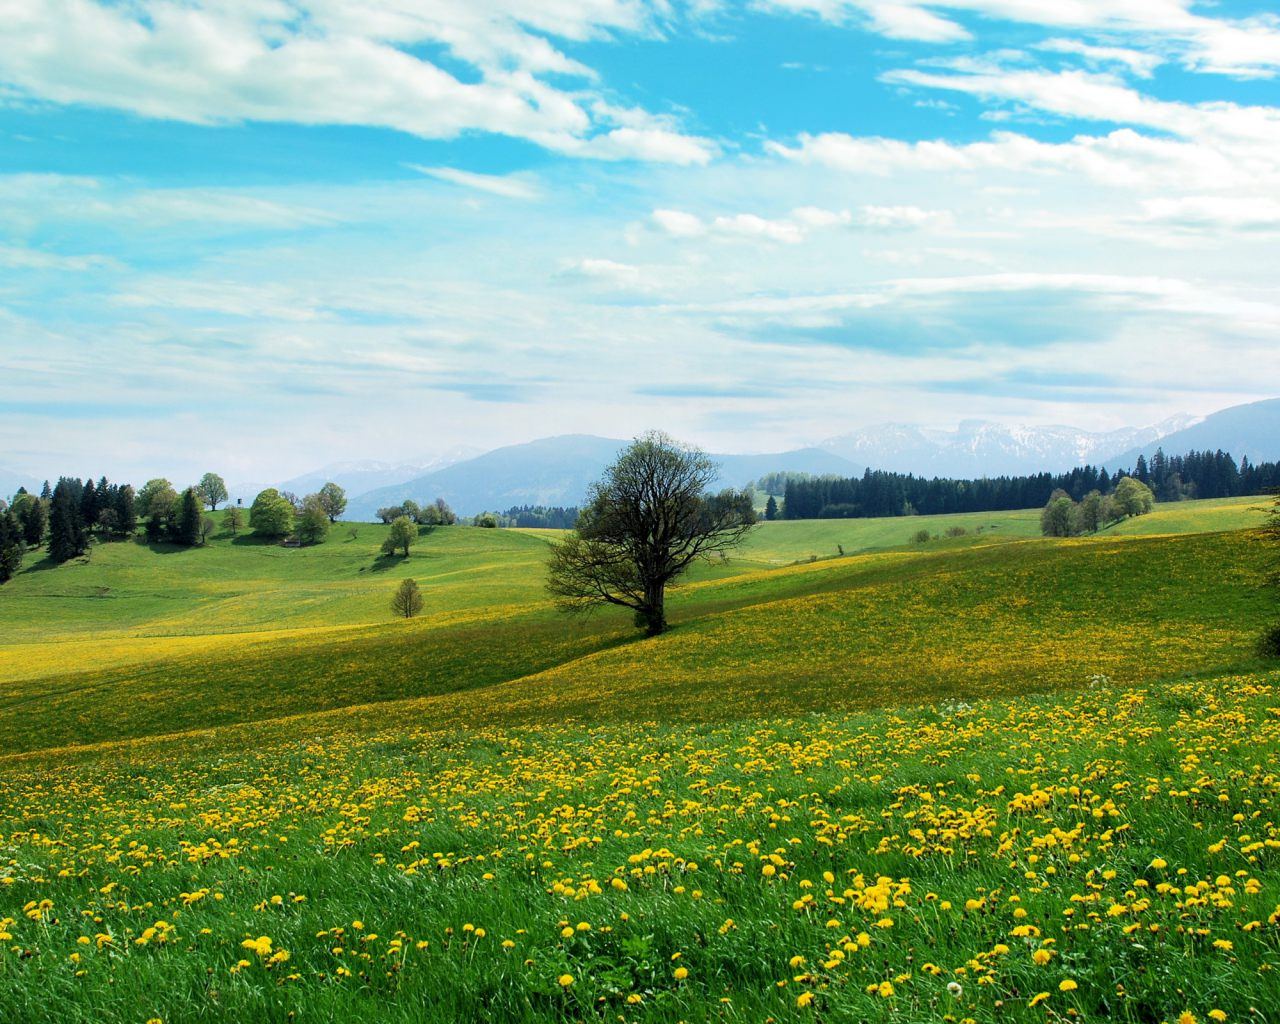 spring fields background